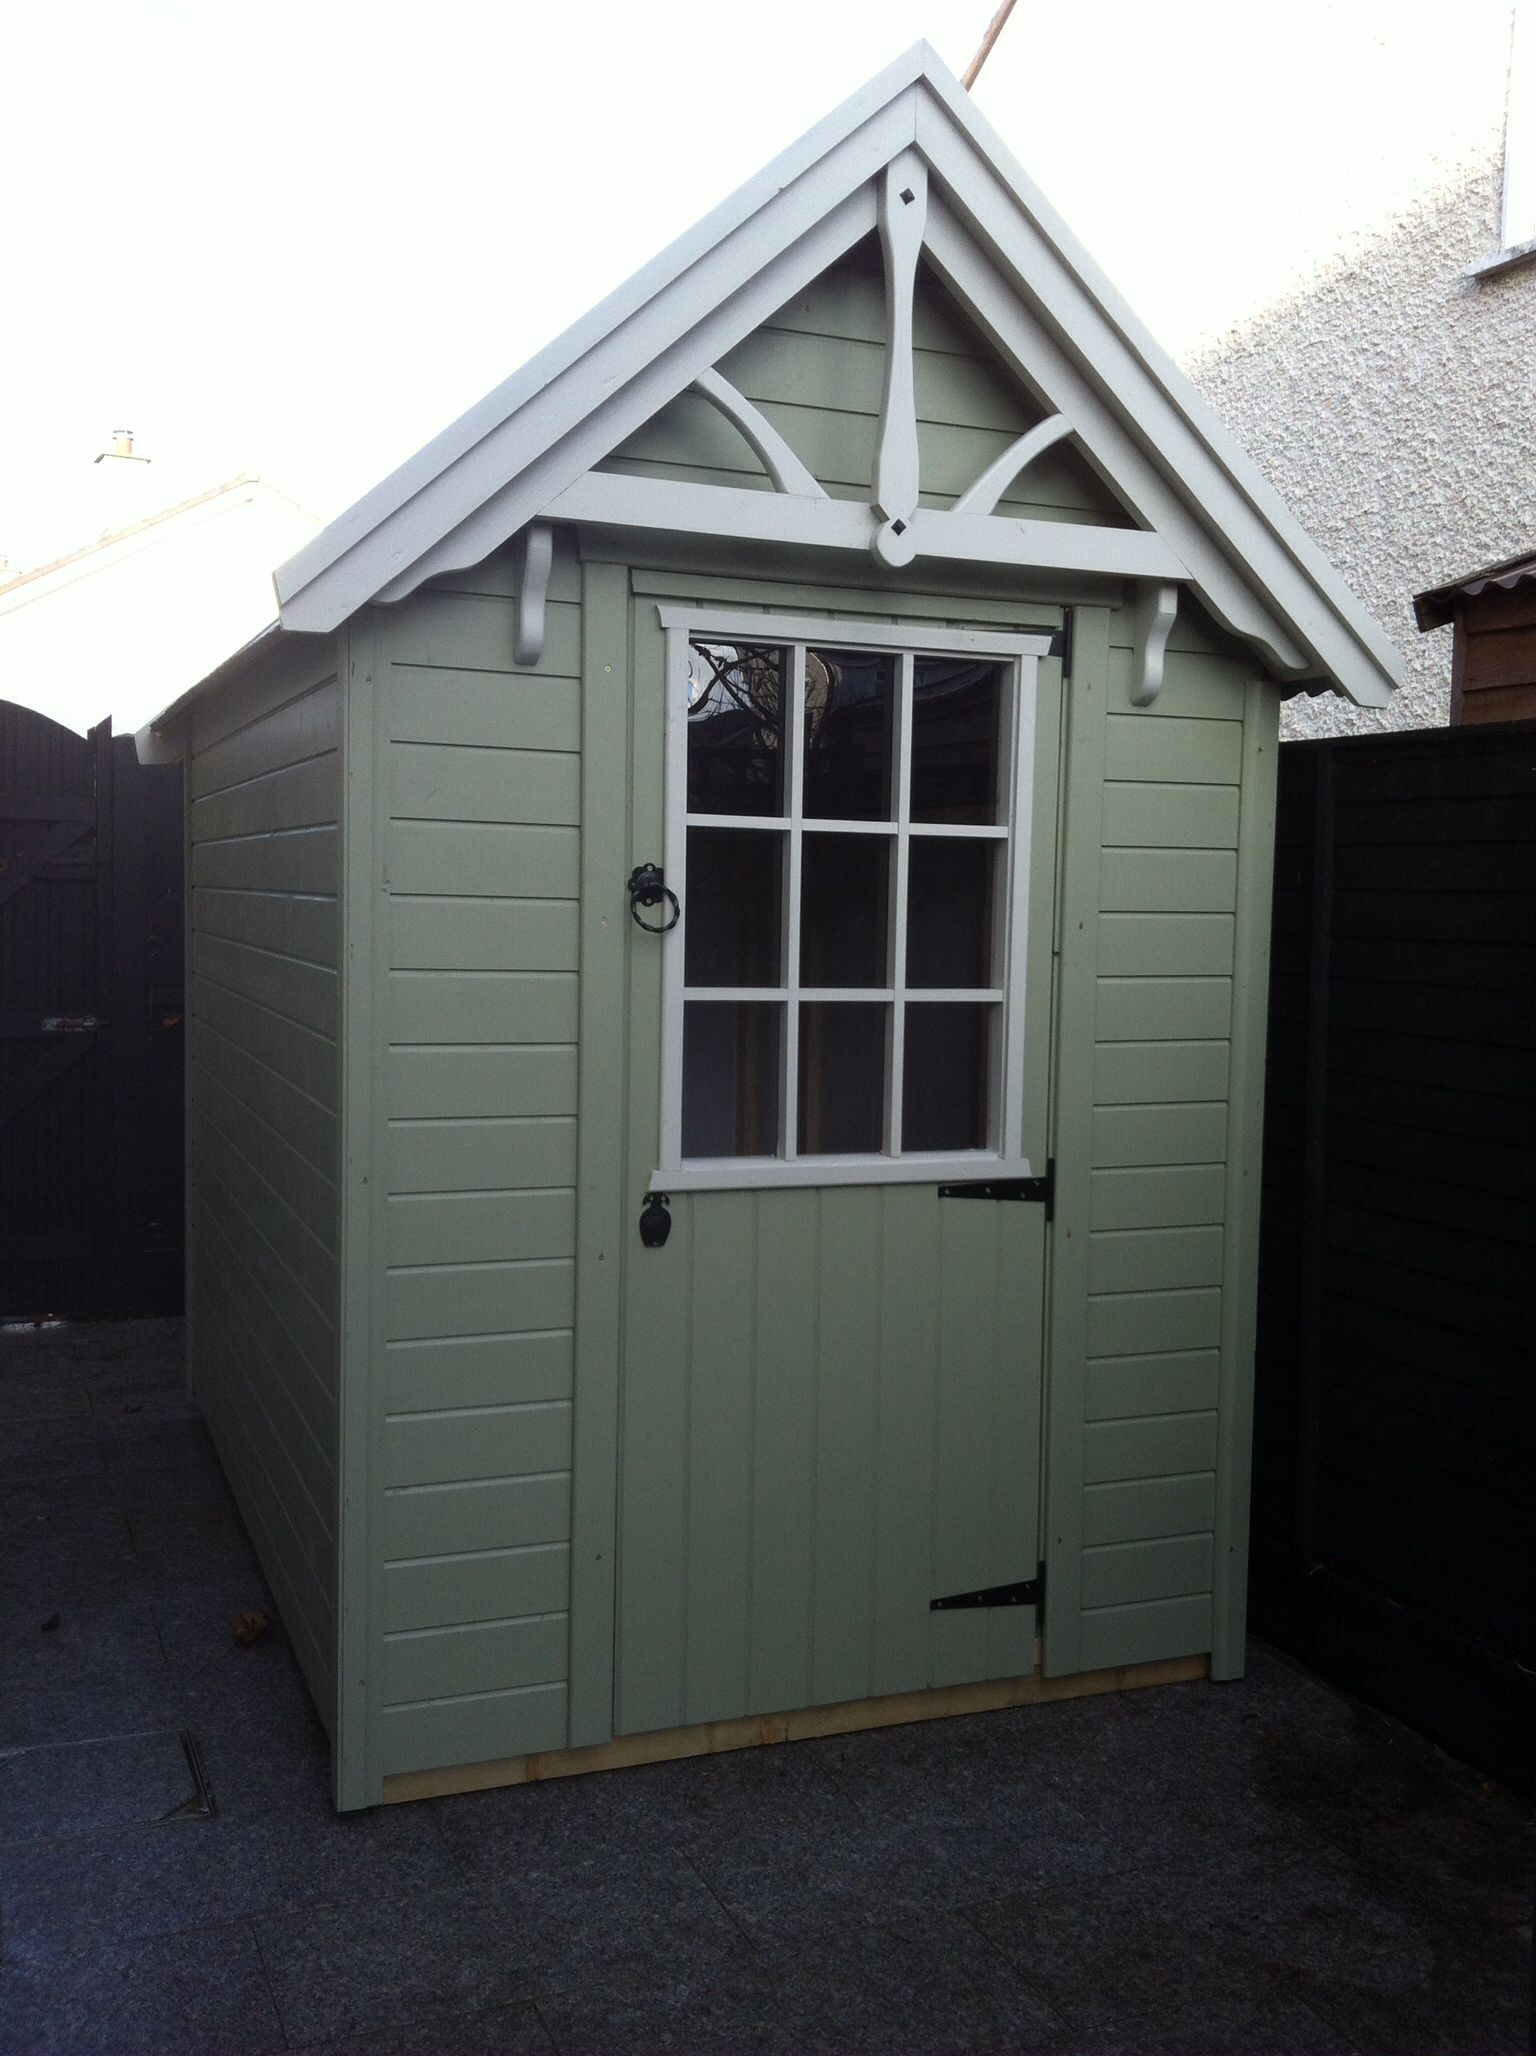 Boyne Garden Sheds Painted In Colourtrend Vicarage Gate And Ha Penny White